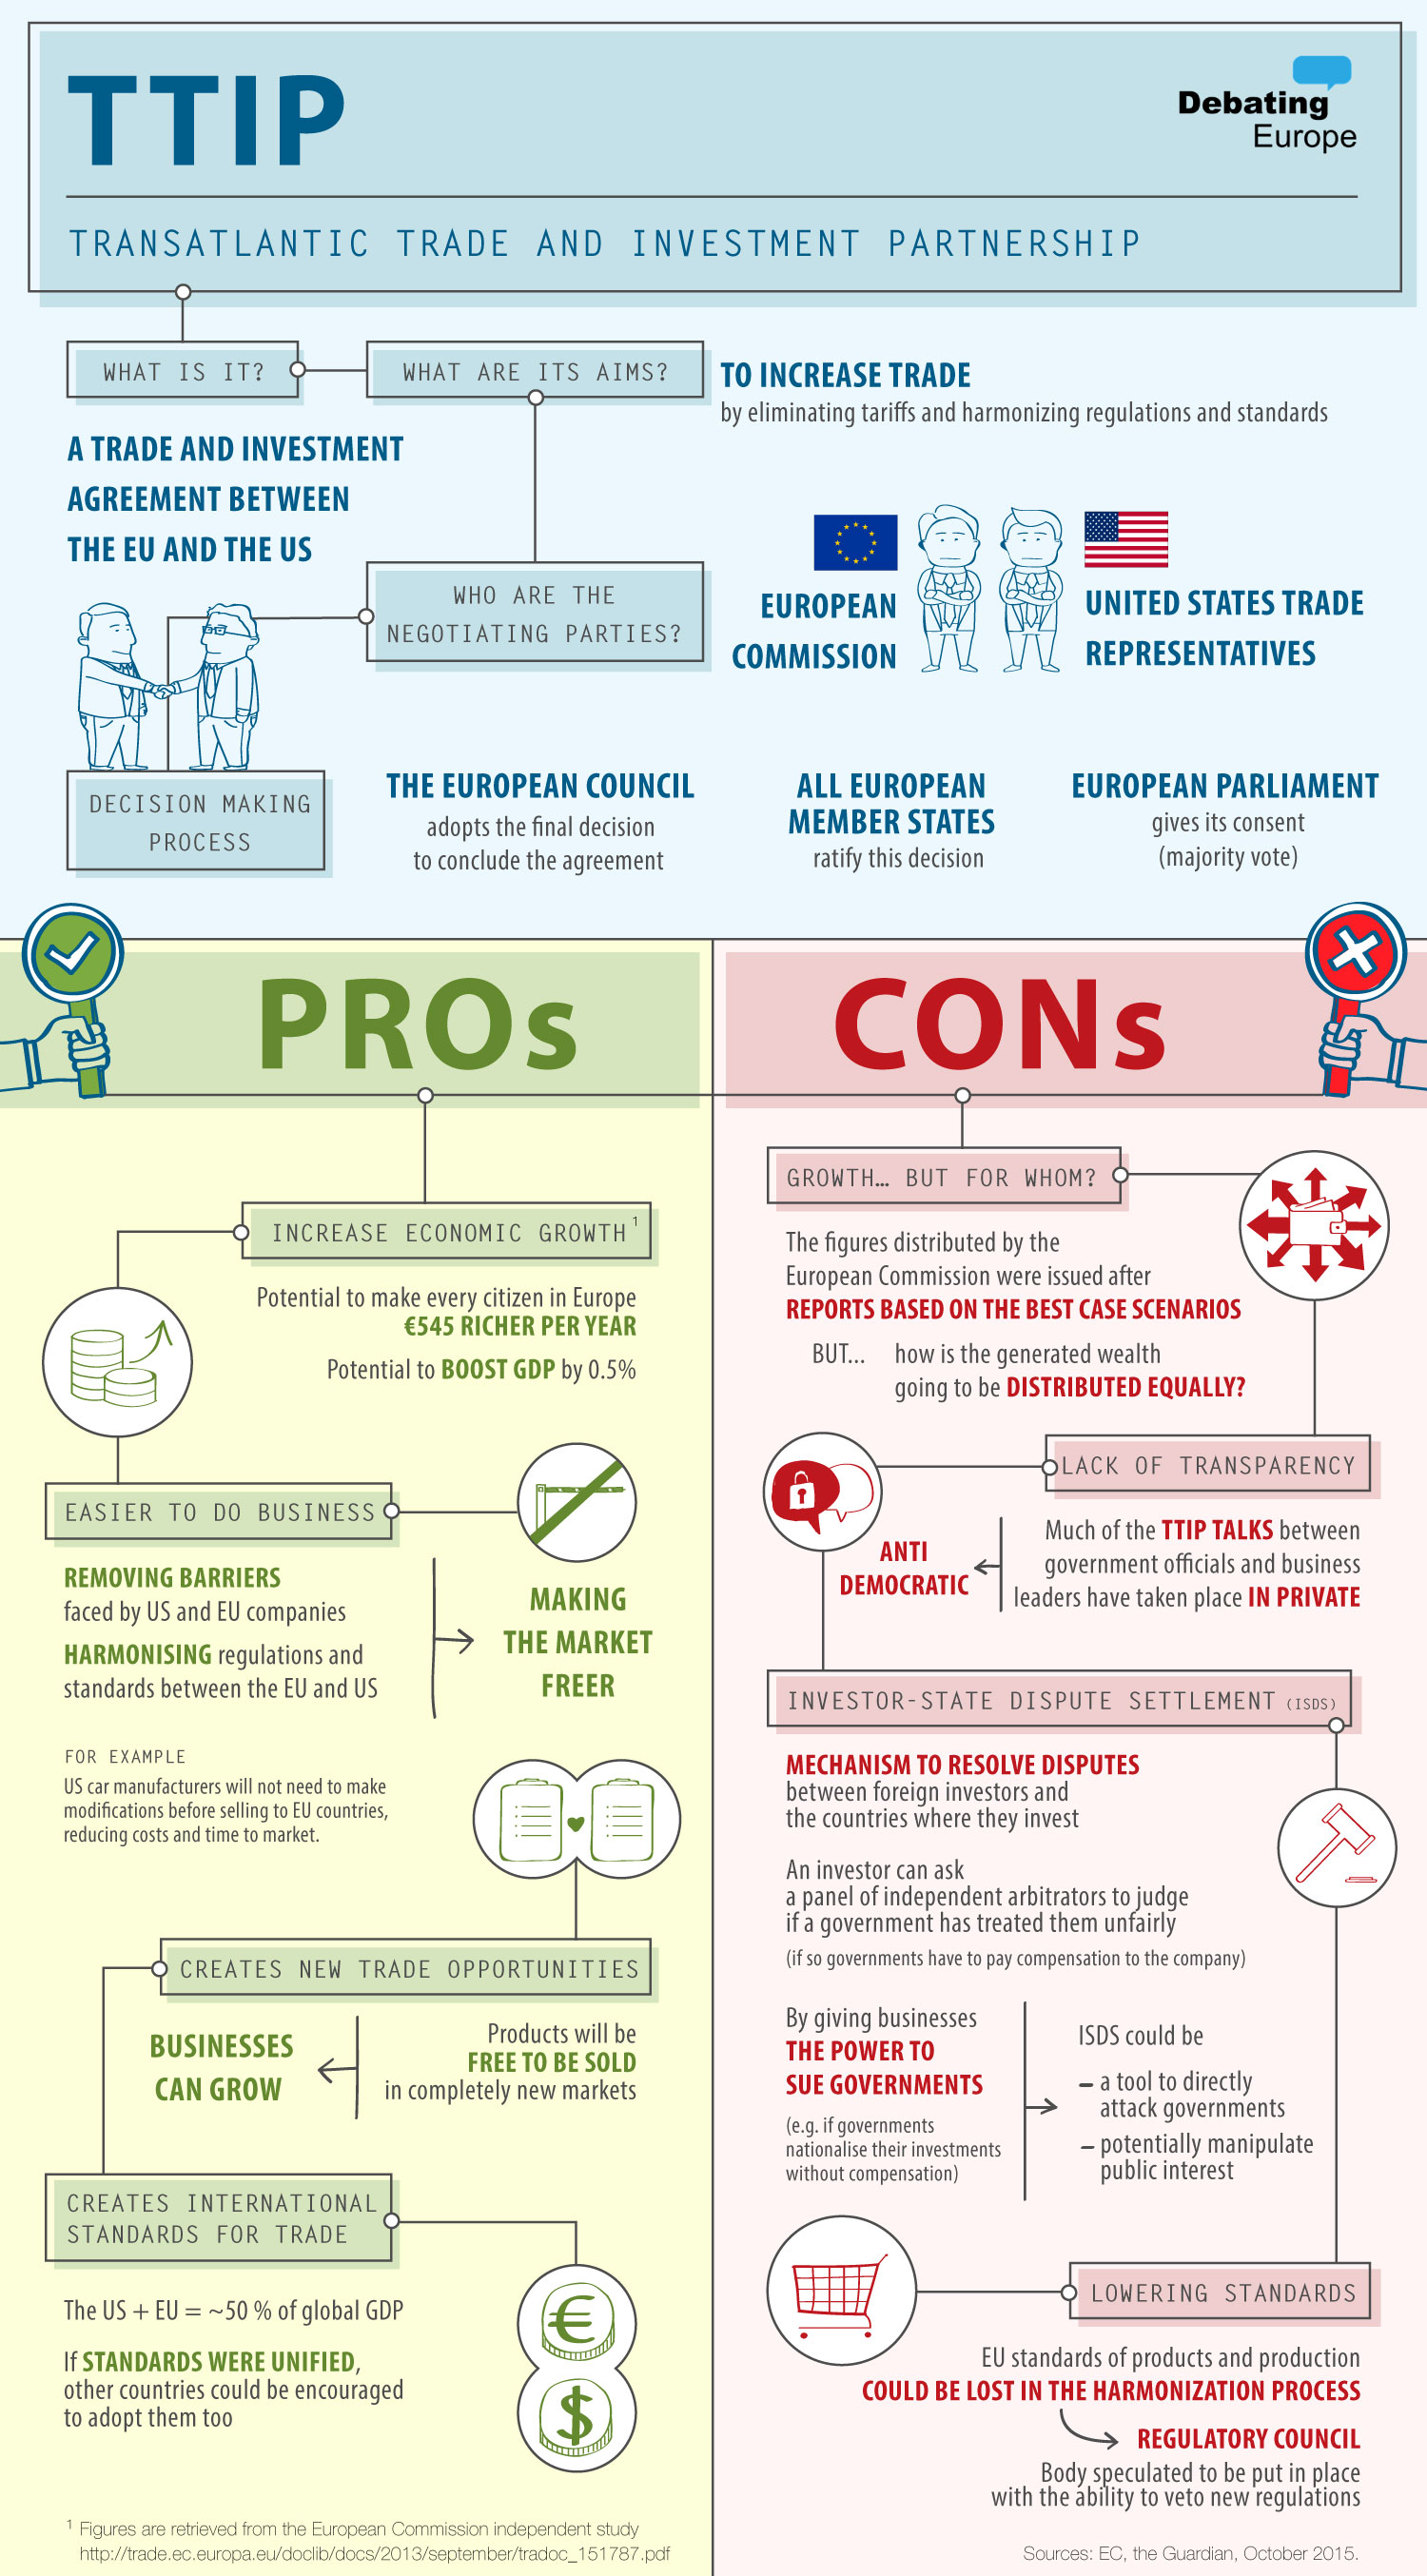 Free Trade Agreement Pros And Cons Nafta Pros And Cons 6